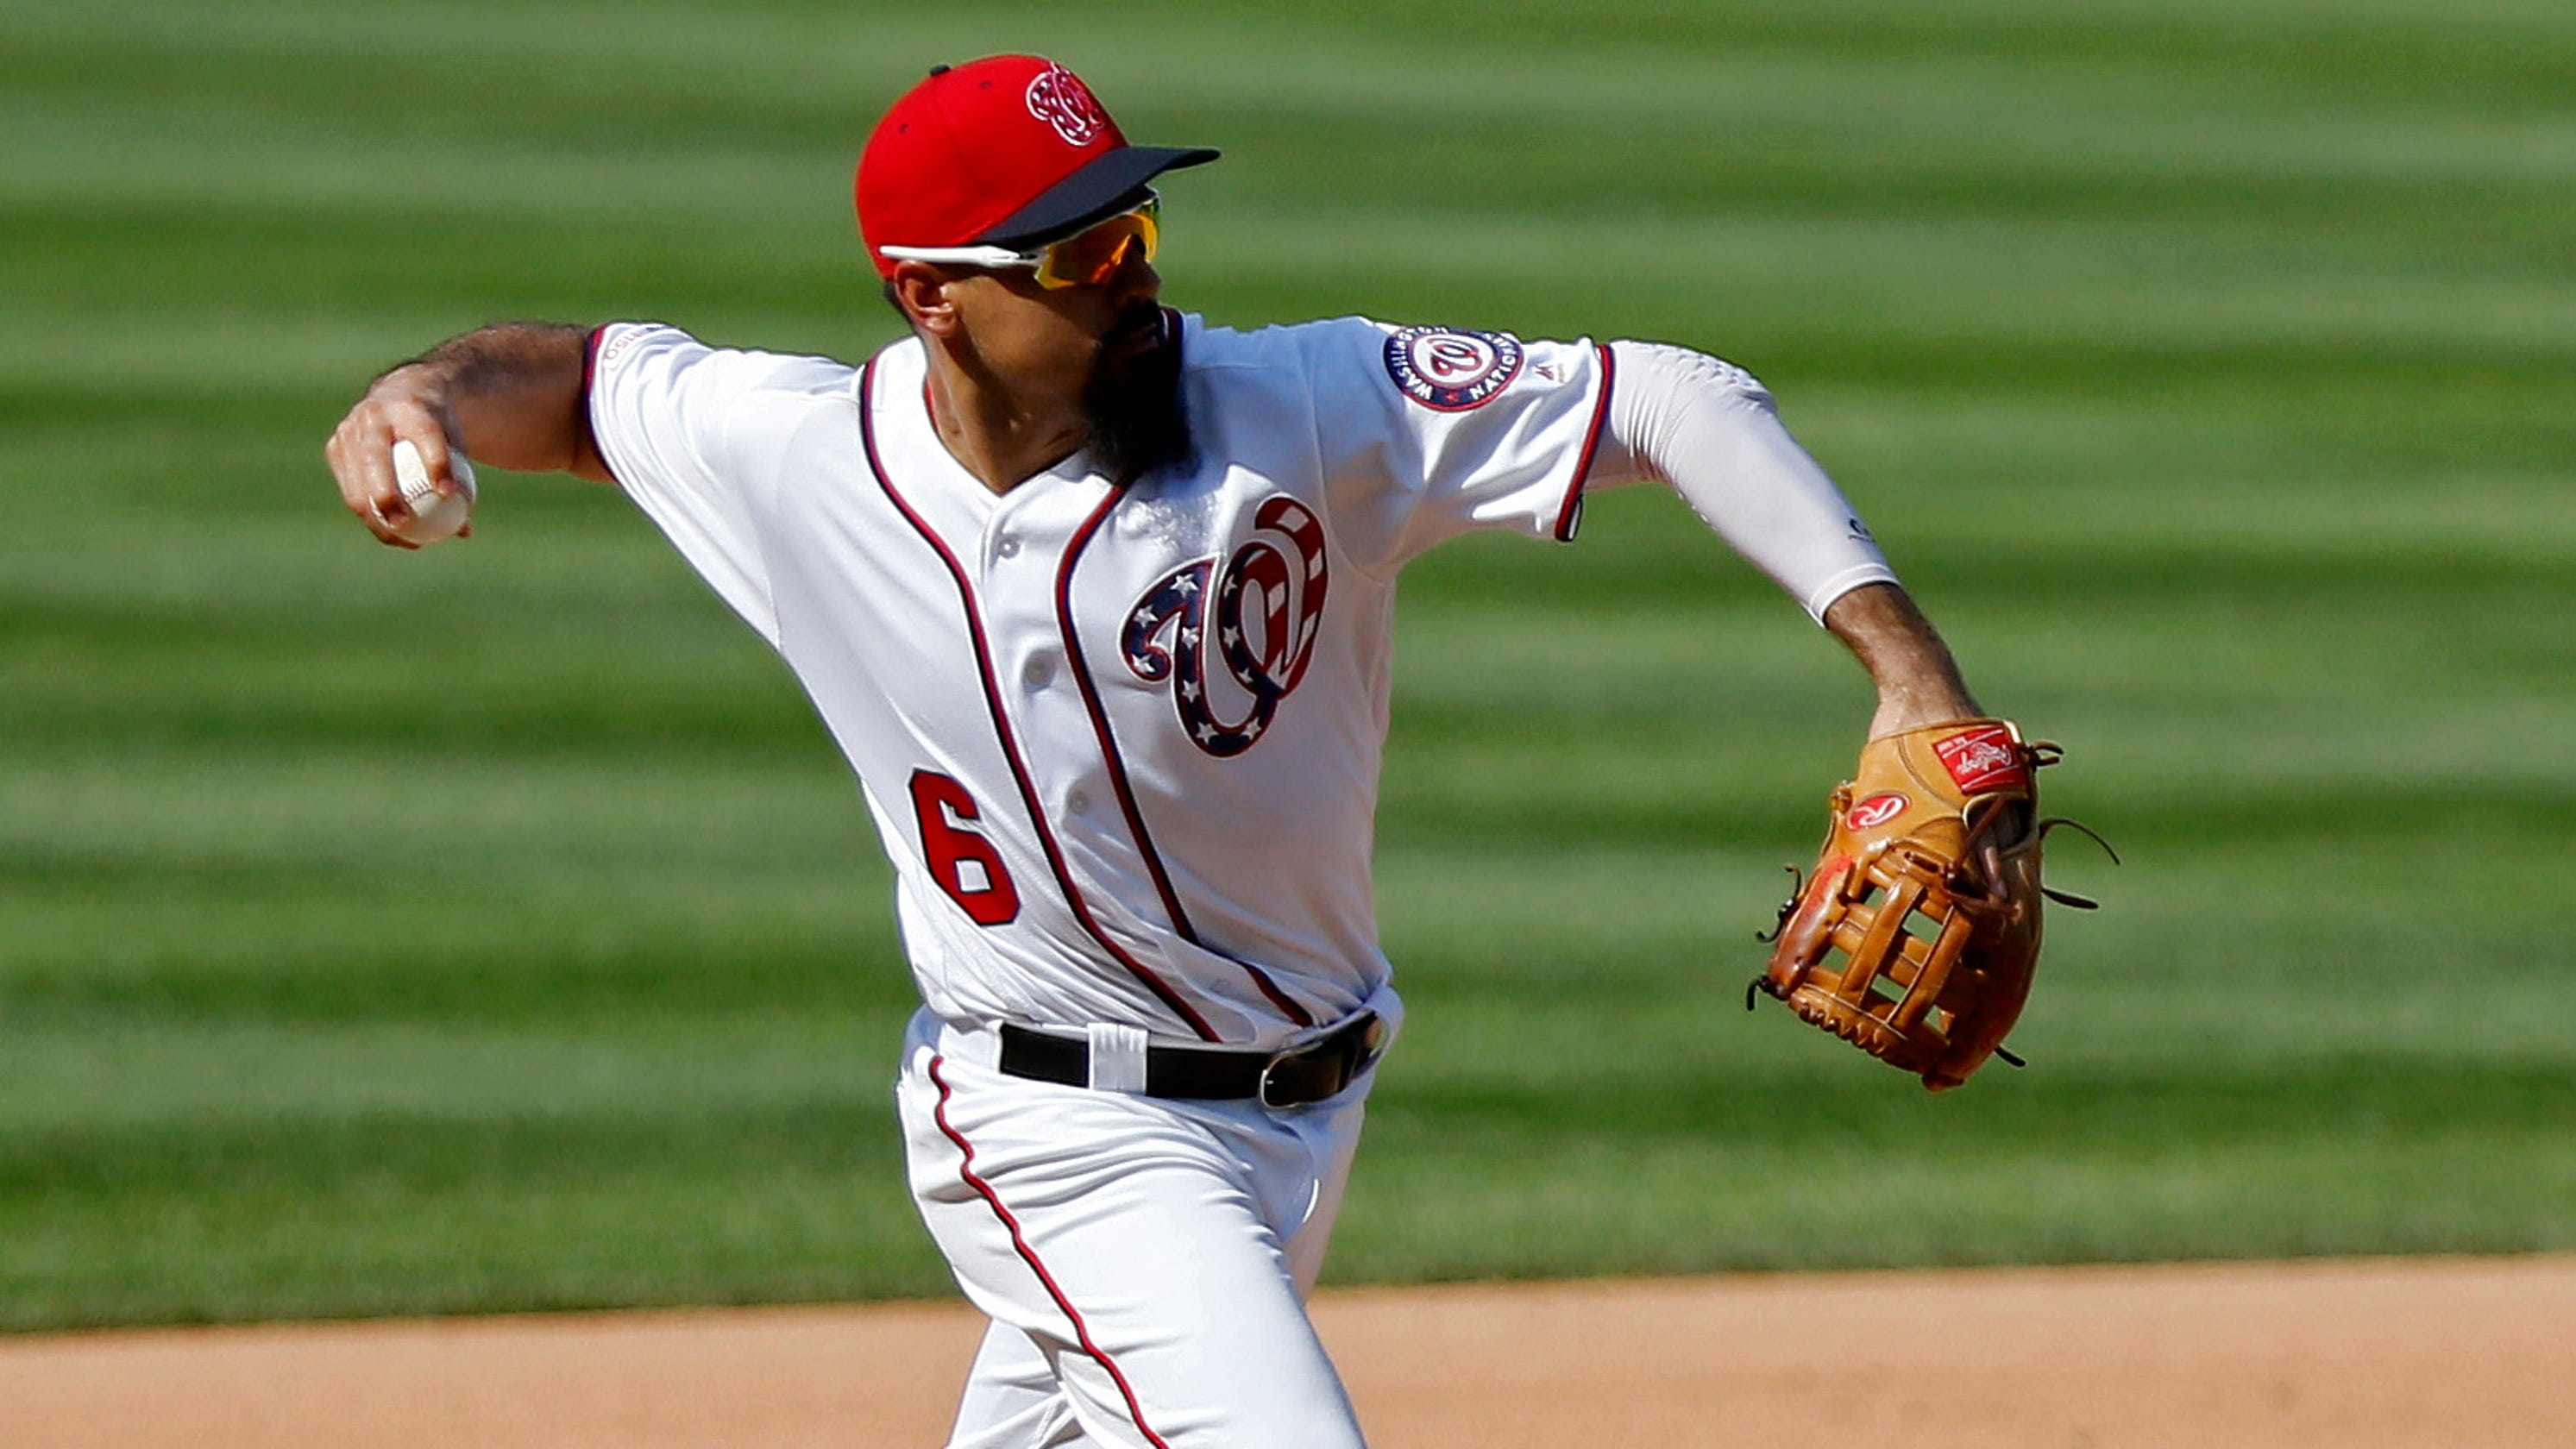 In star-studded NL MVP race, Anthony Rendon may outlast his competition